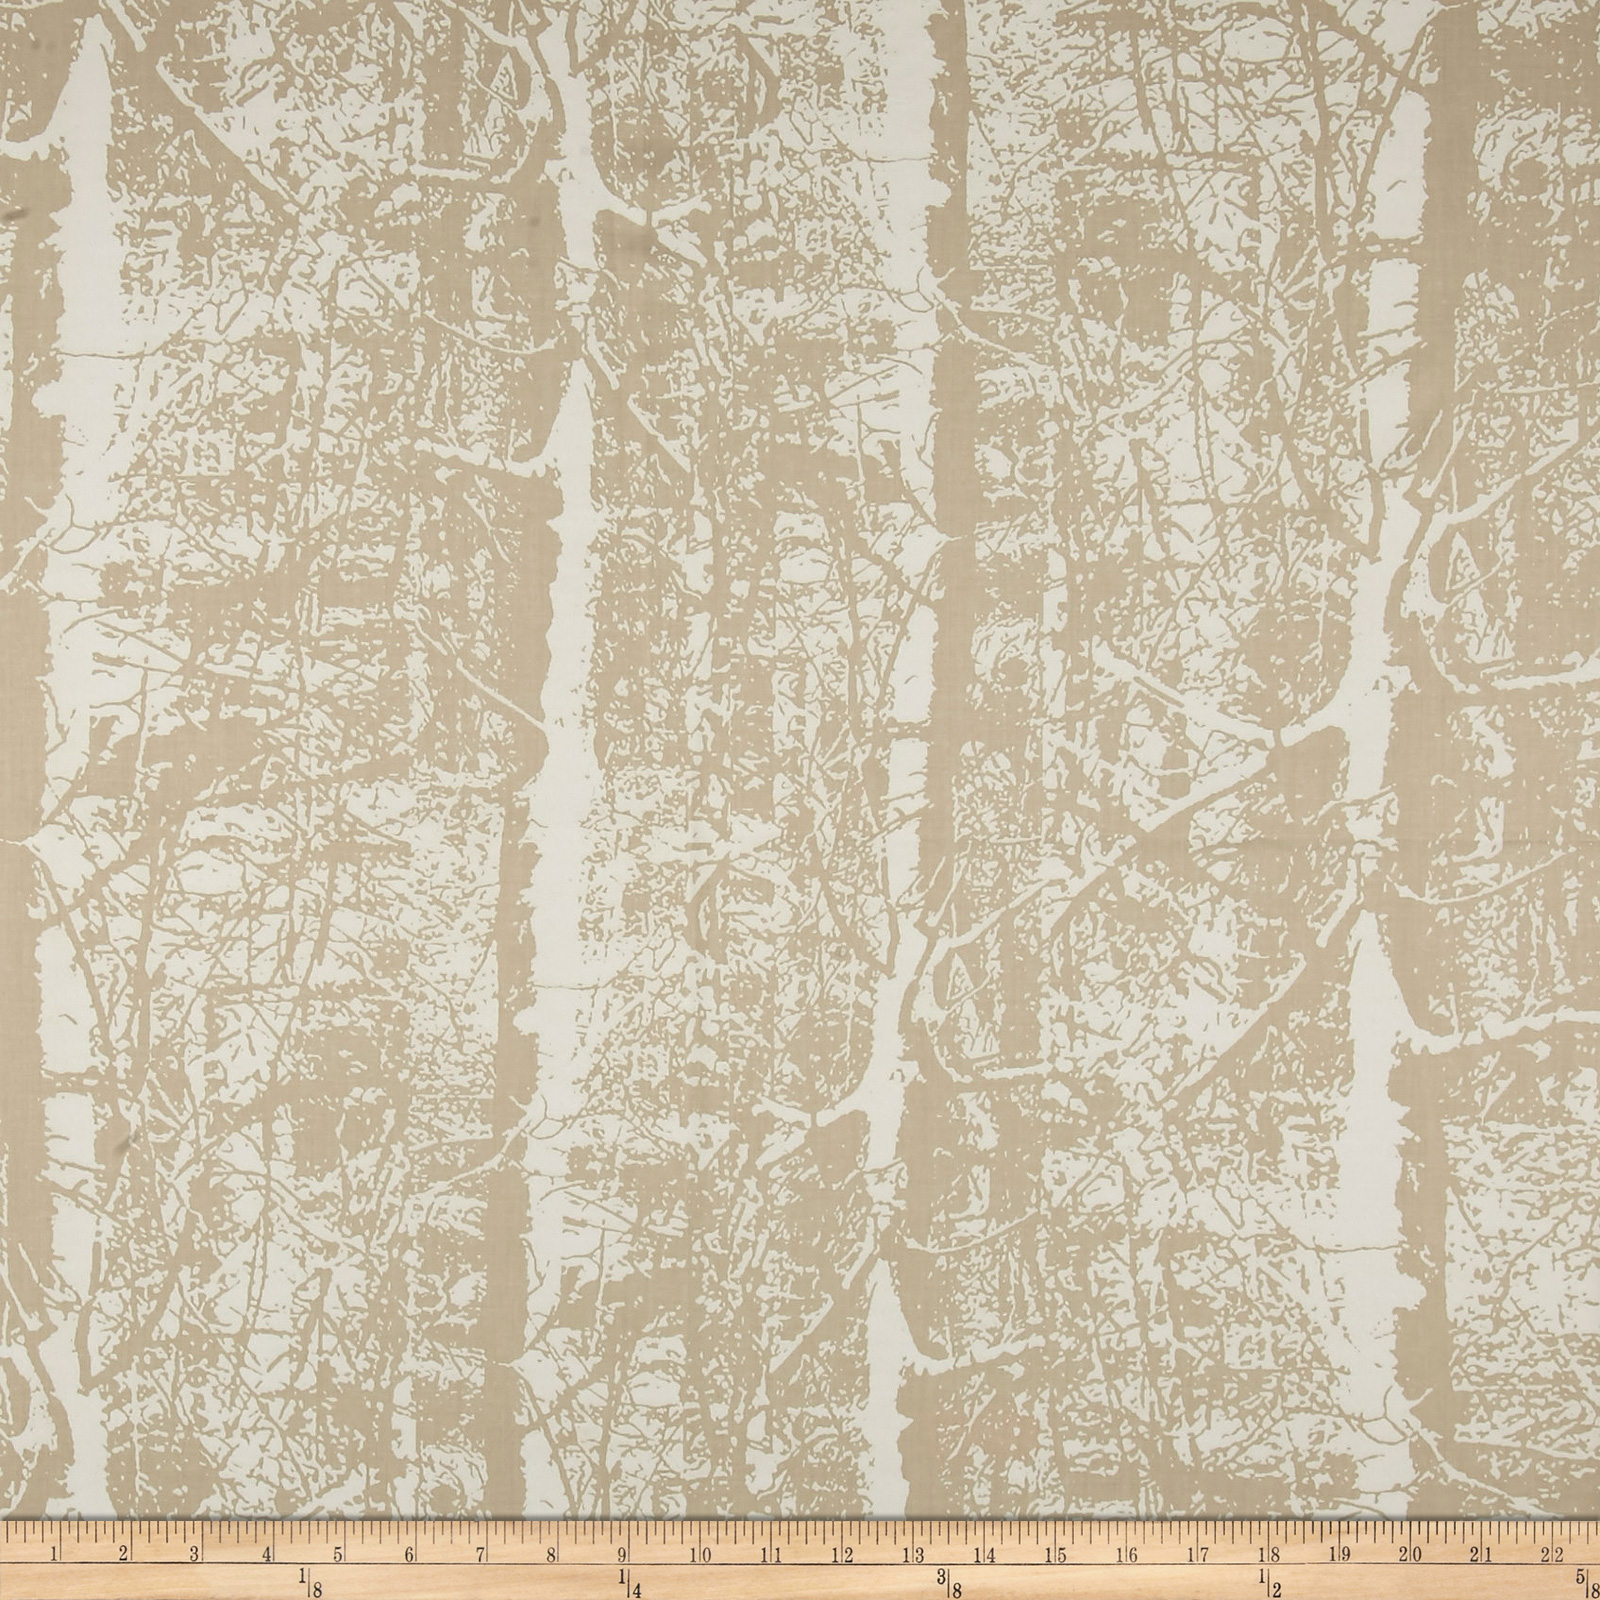 Home Accent Woodland Twill Sateen Almond Bark Fabric